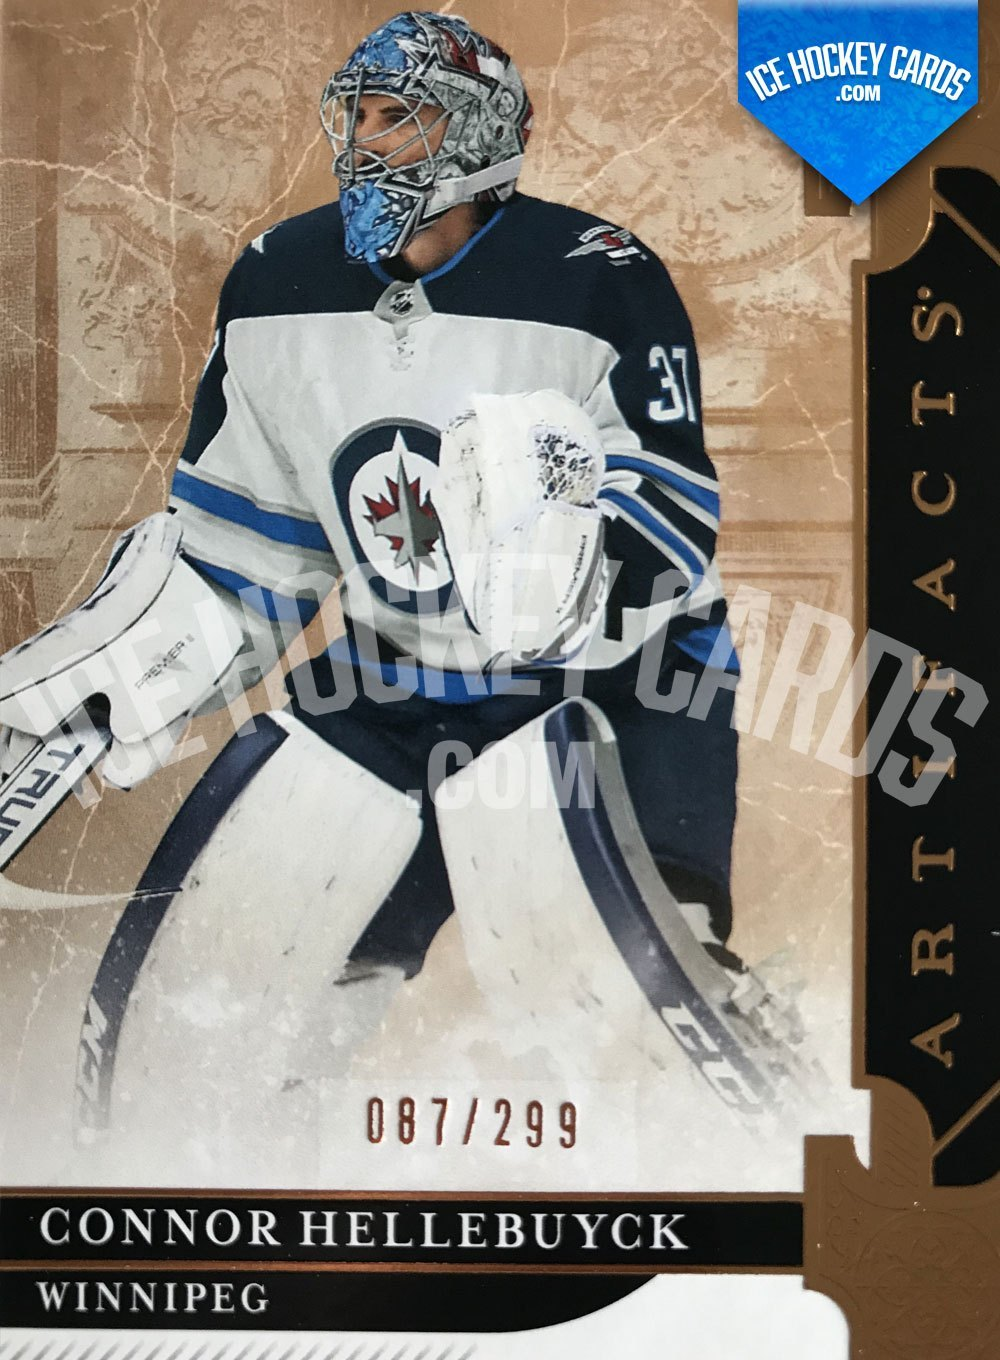 Upper Deck - Artifacts 19-20 - Connor Hellebuyck Parallel Gold Card